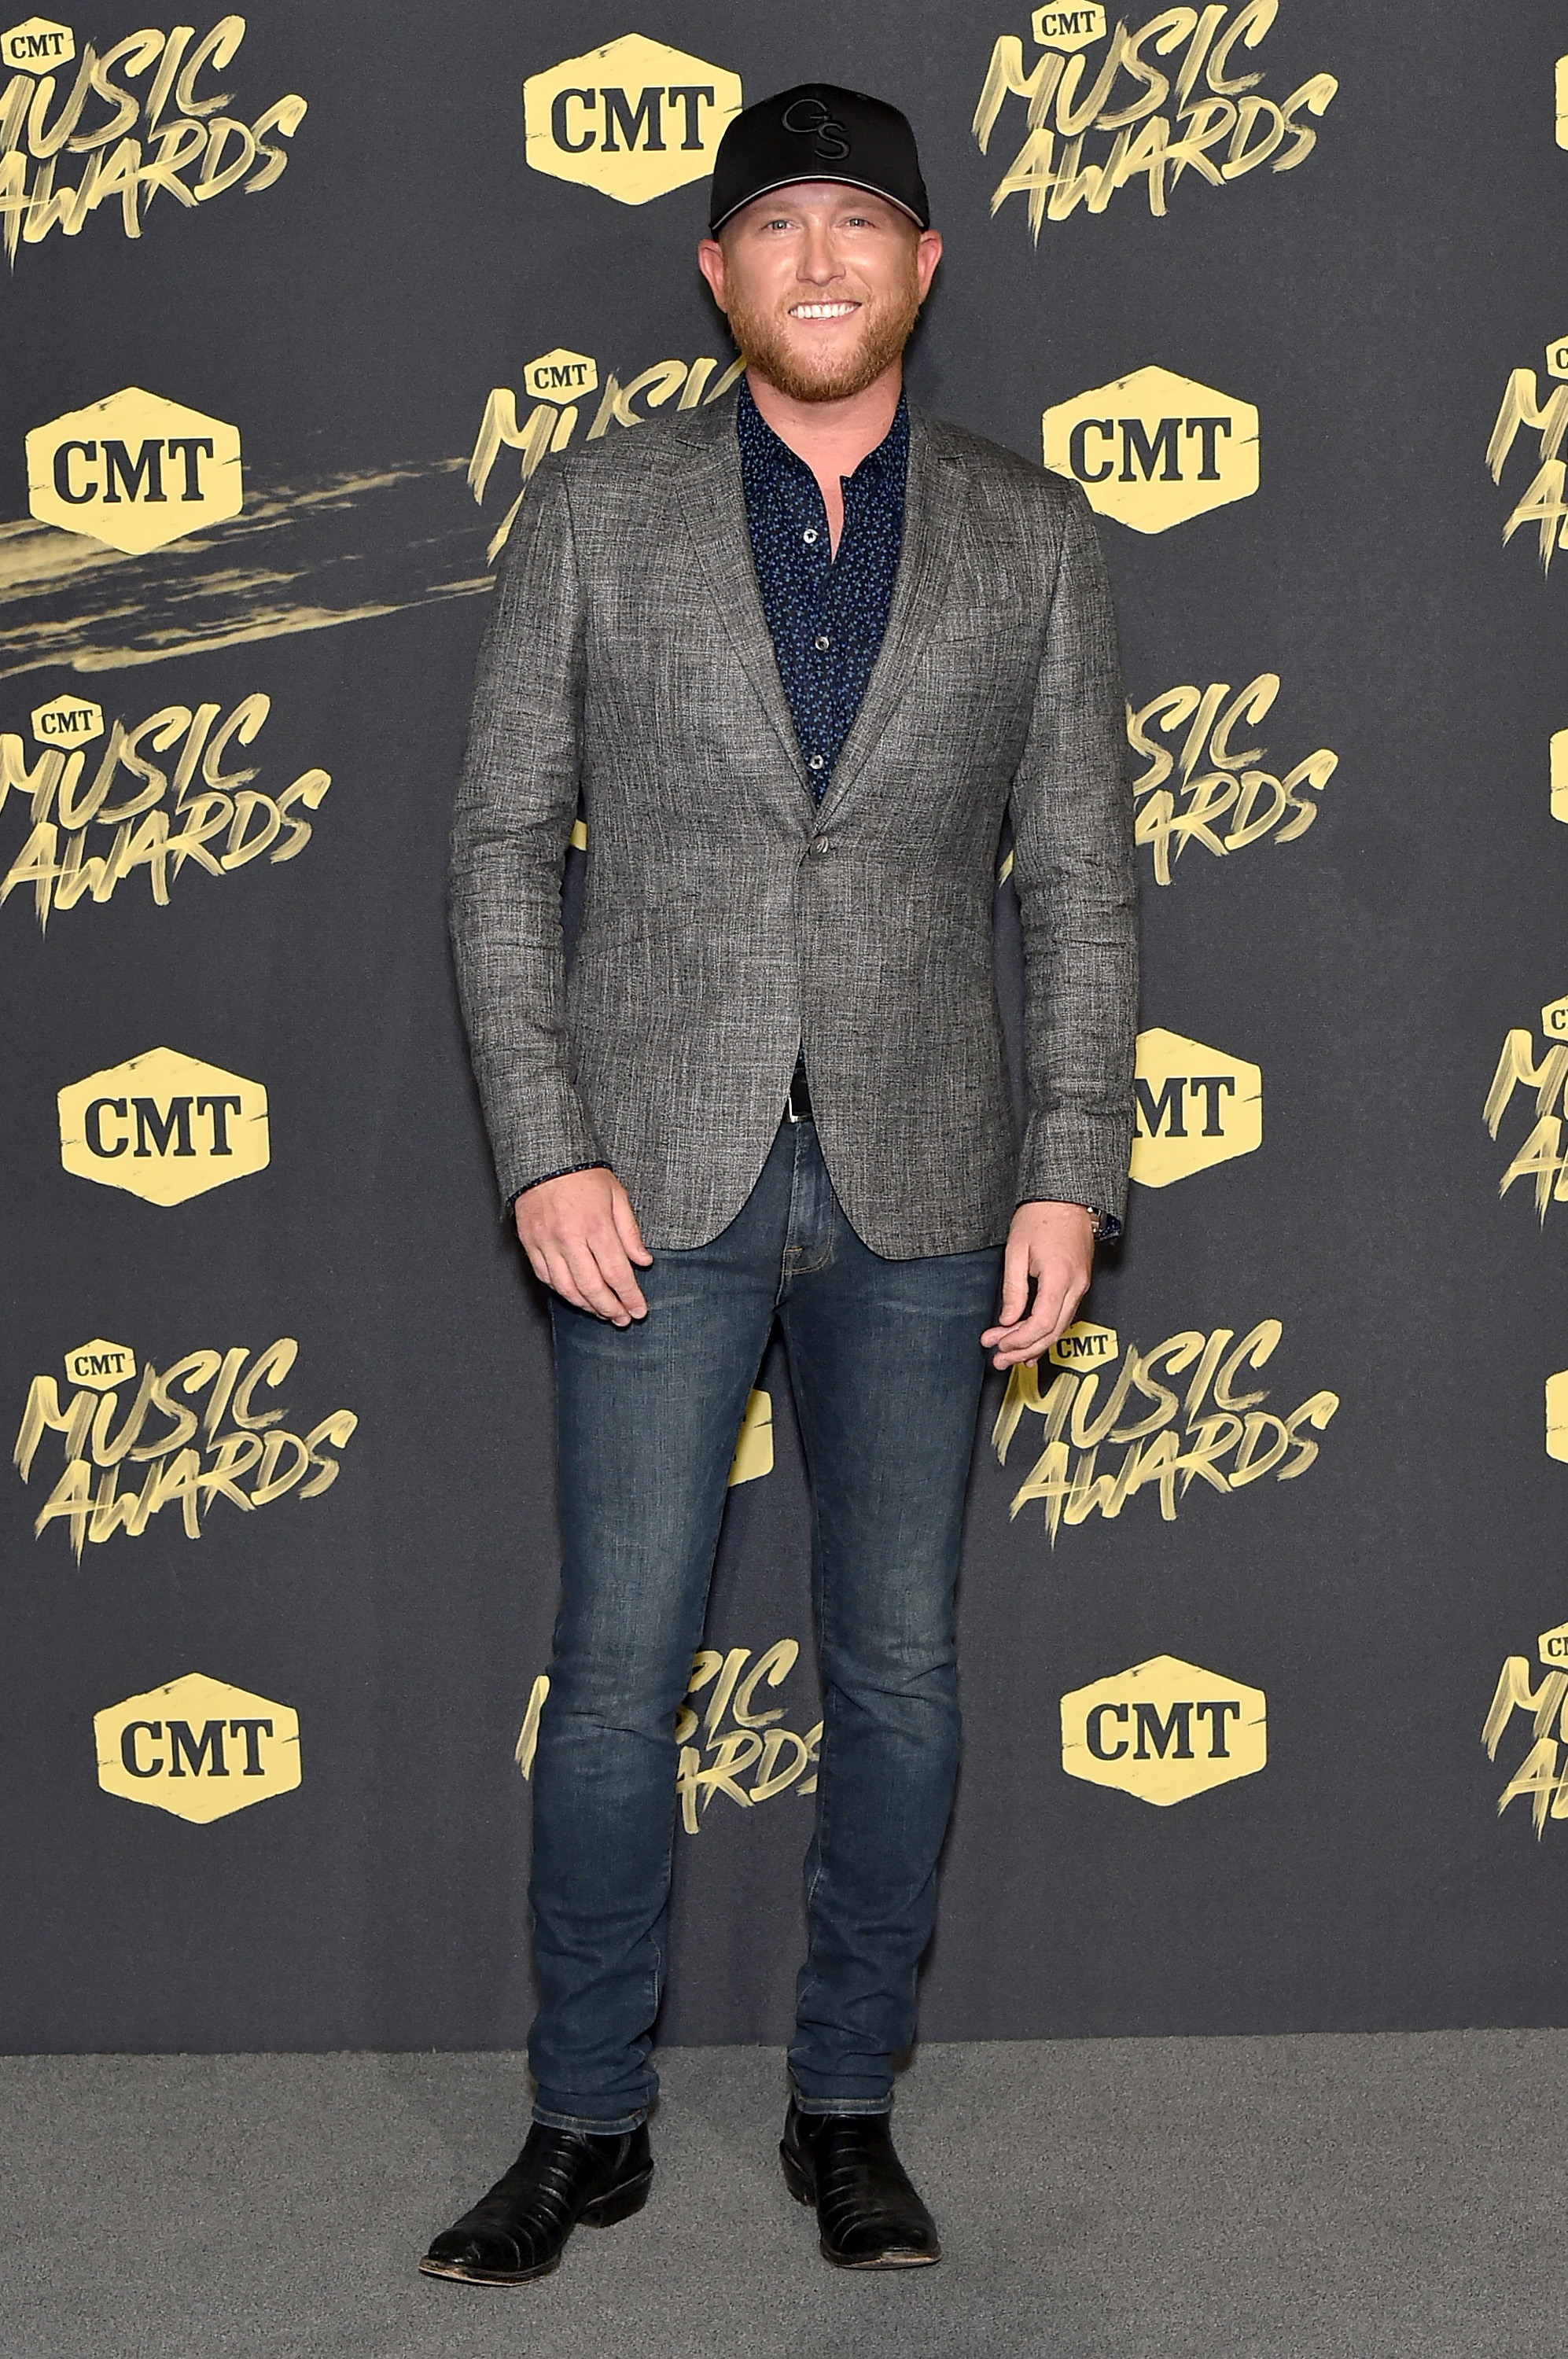 Cole Swindell 2018 CMT Music Awards